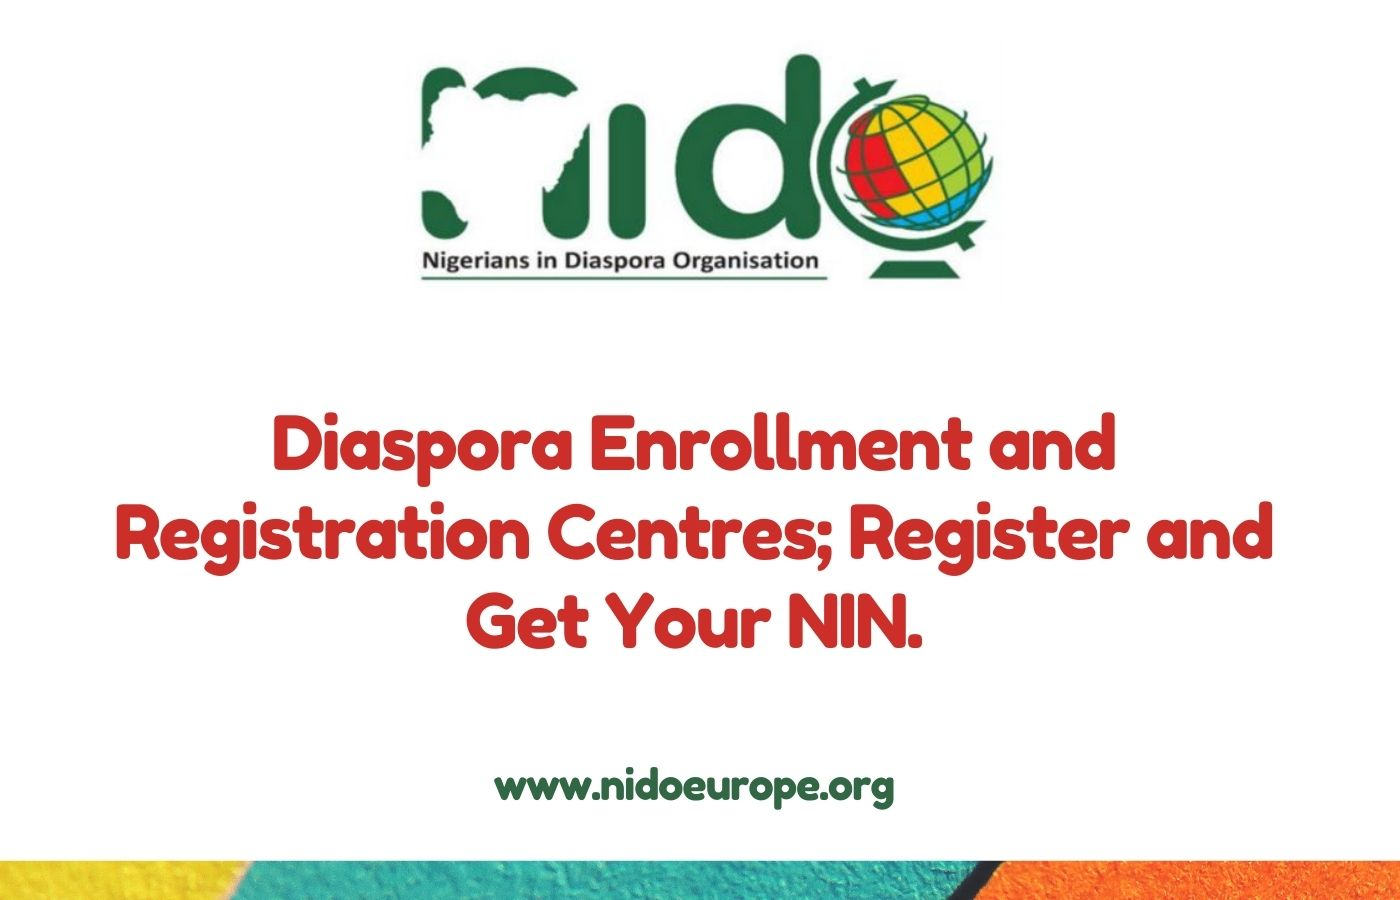 Diaspora Enrollment and Registration Centres; Register and Get Your NIN.